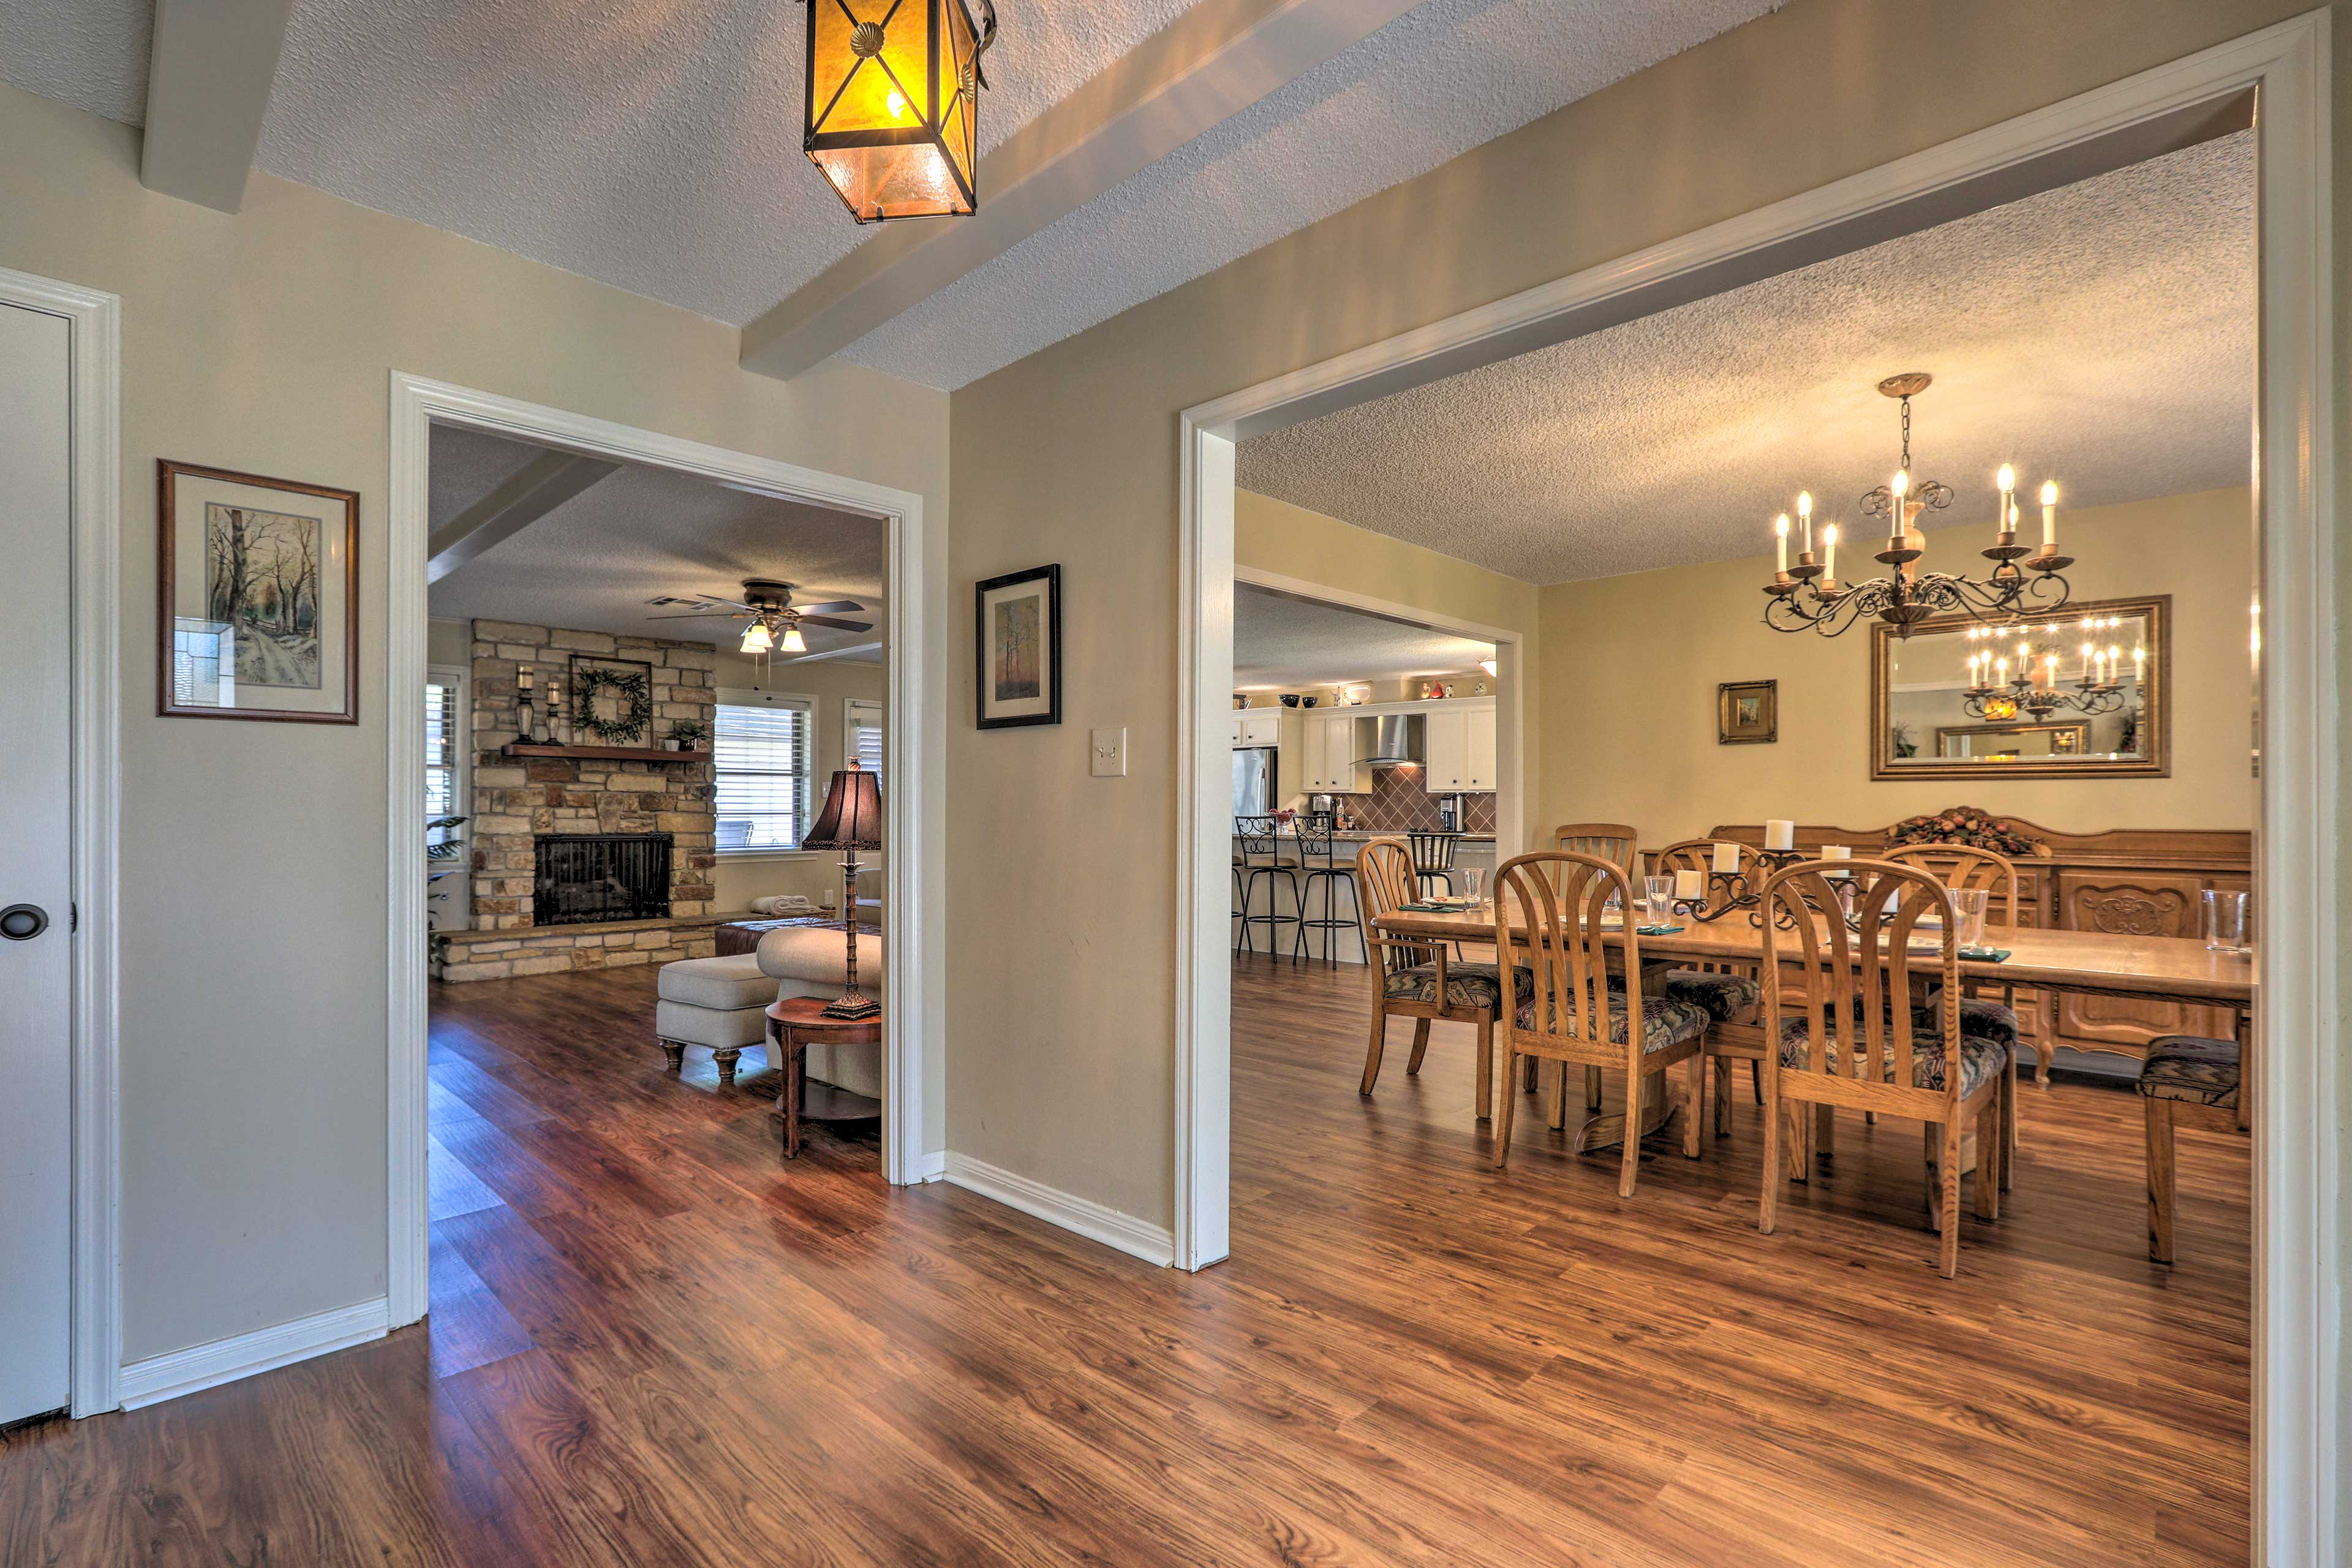 Enjoy 3,200 square feet of living space!